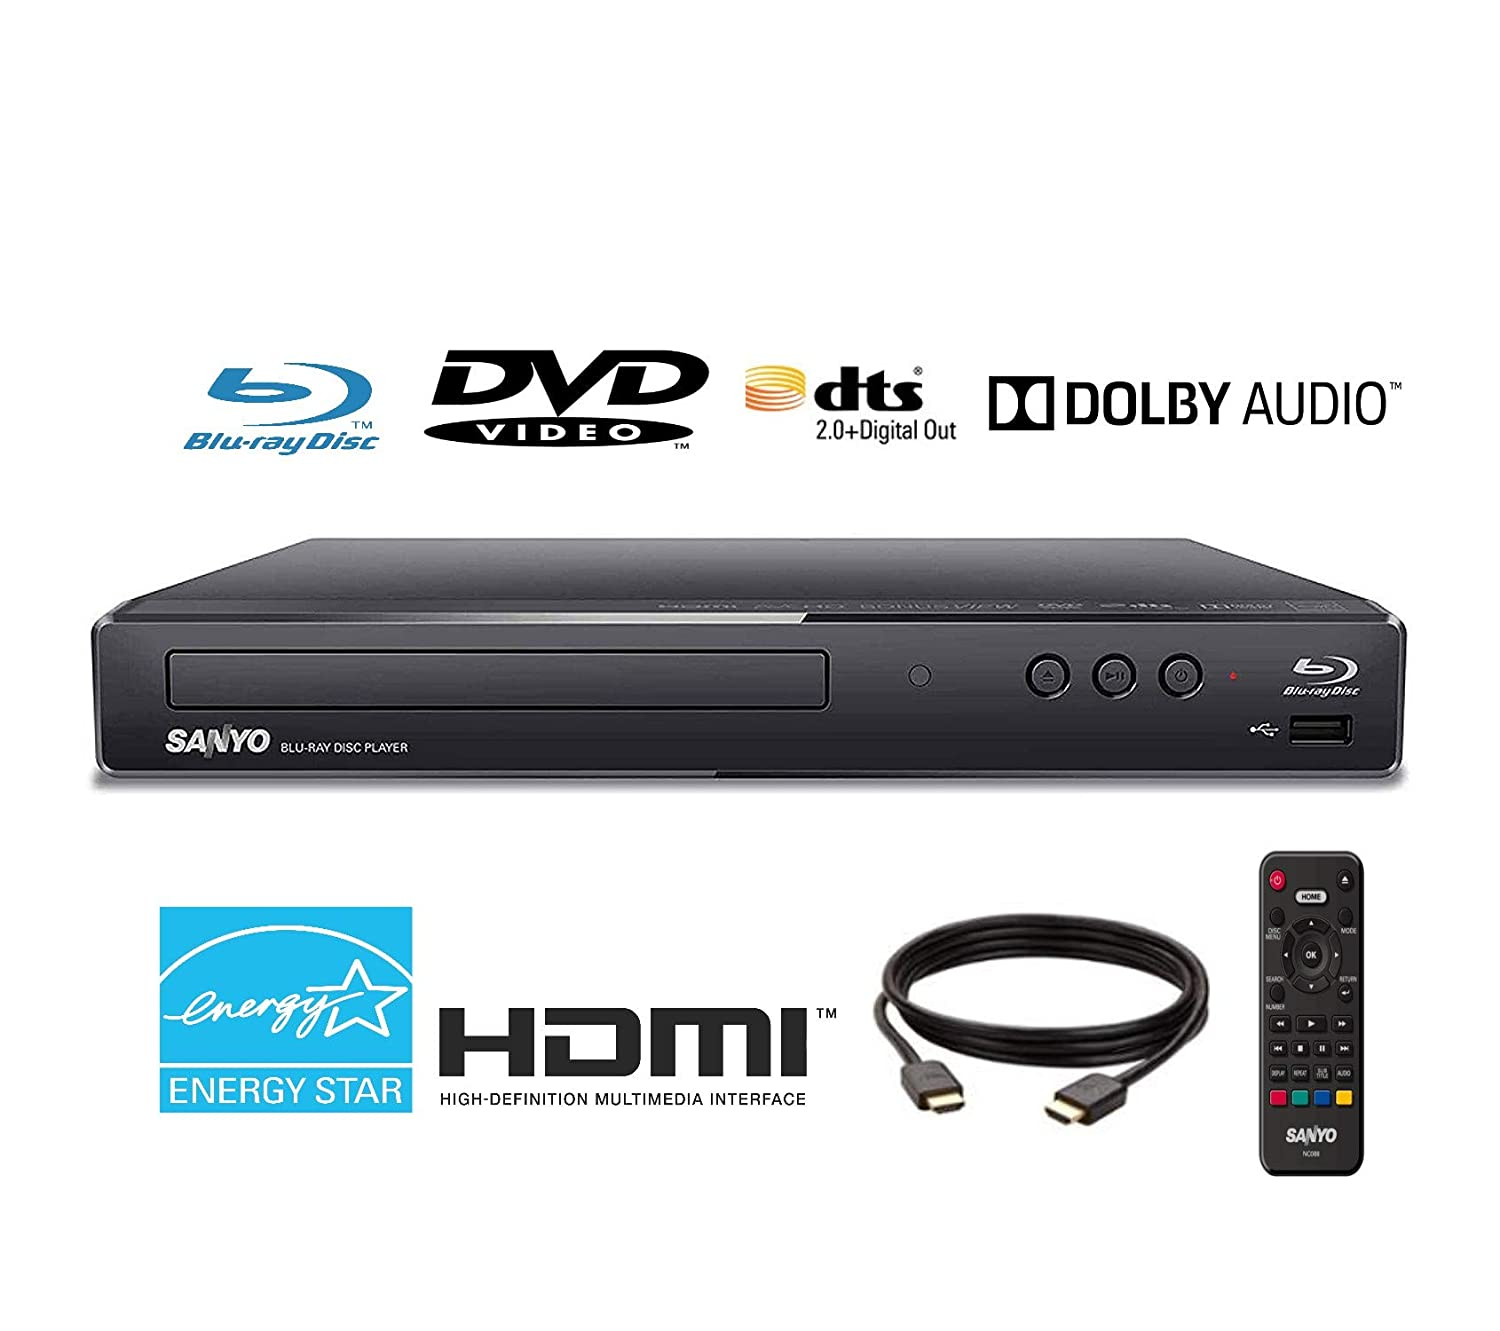 Renewed Sanyo FWBP505F Blu-ray Player 6FT HDMI Cable Included